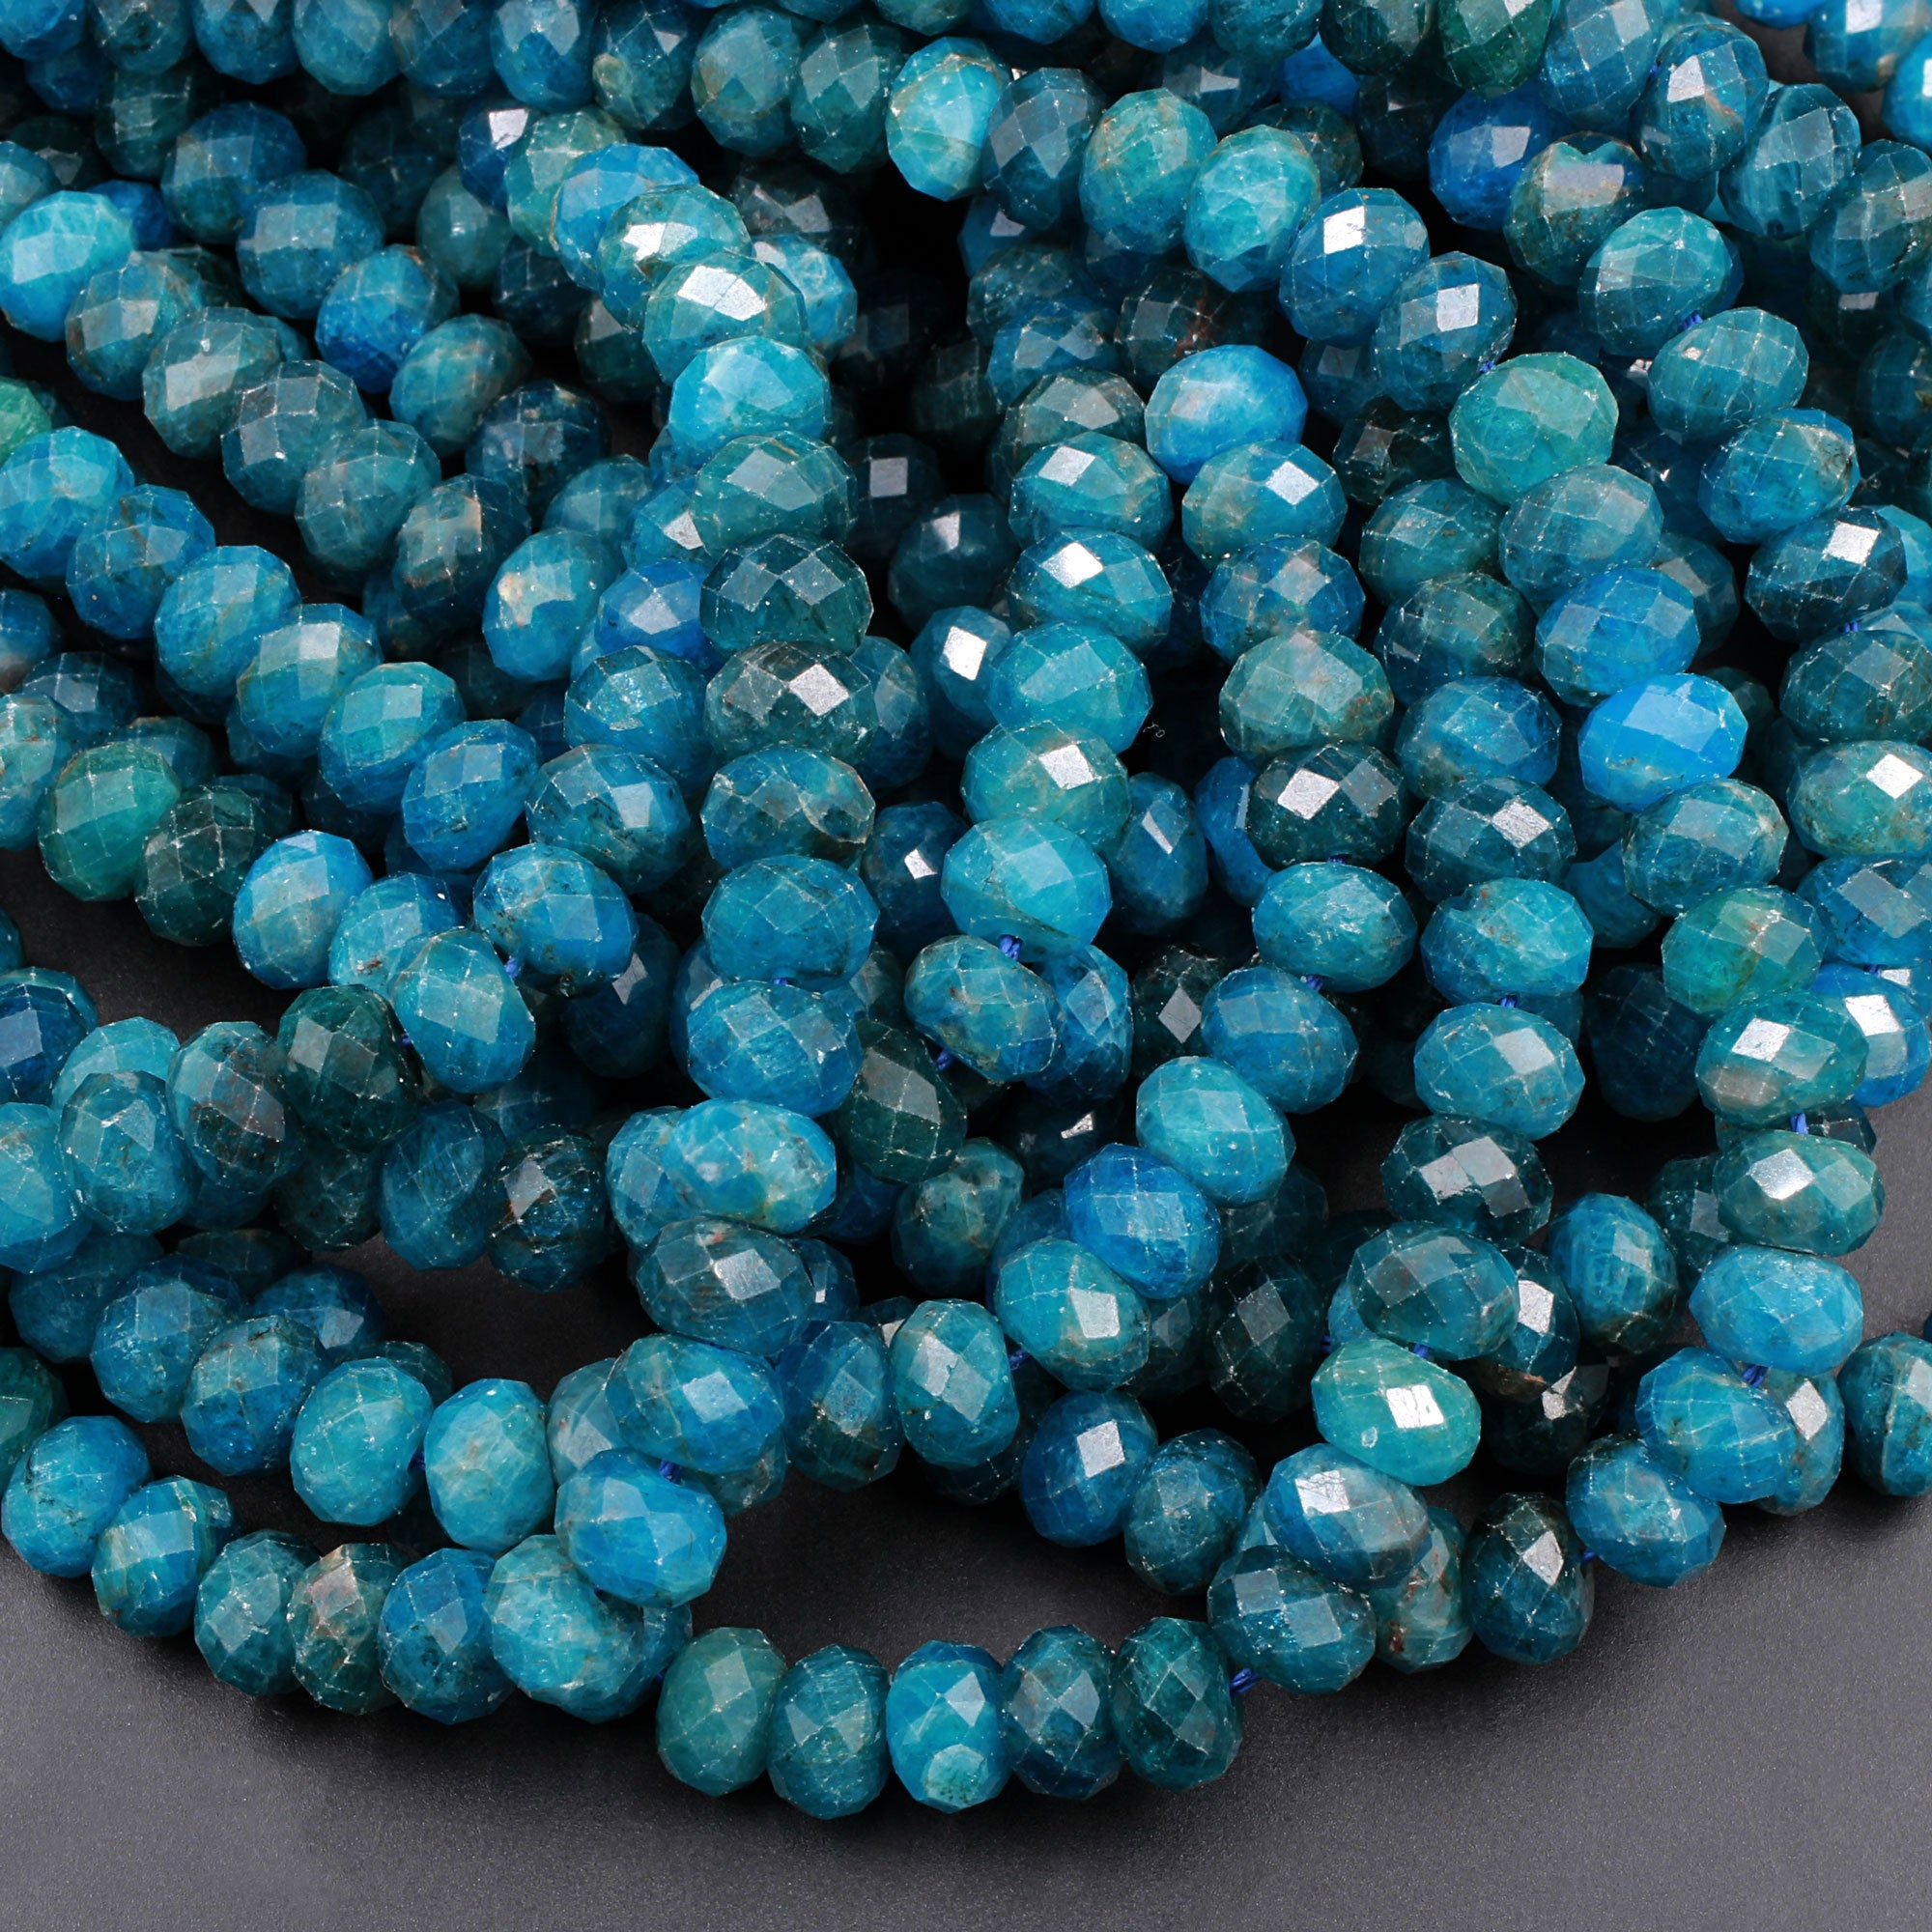 2mm large hole bead. 7mm natural Blue Apatite rondelle faceted